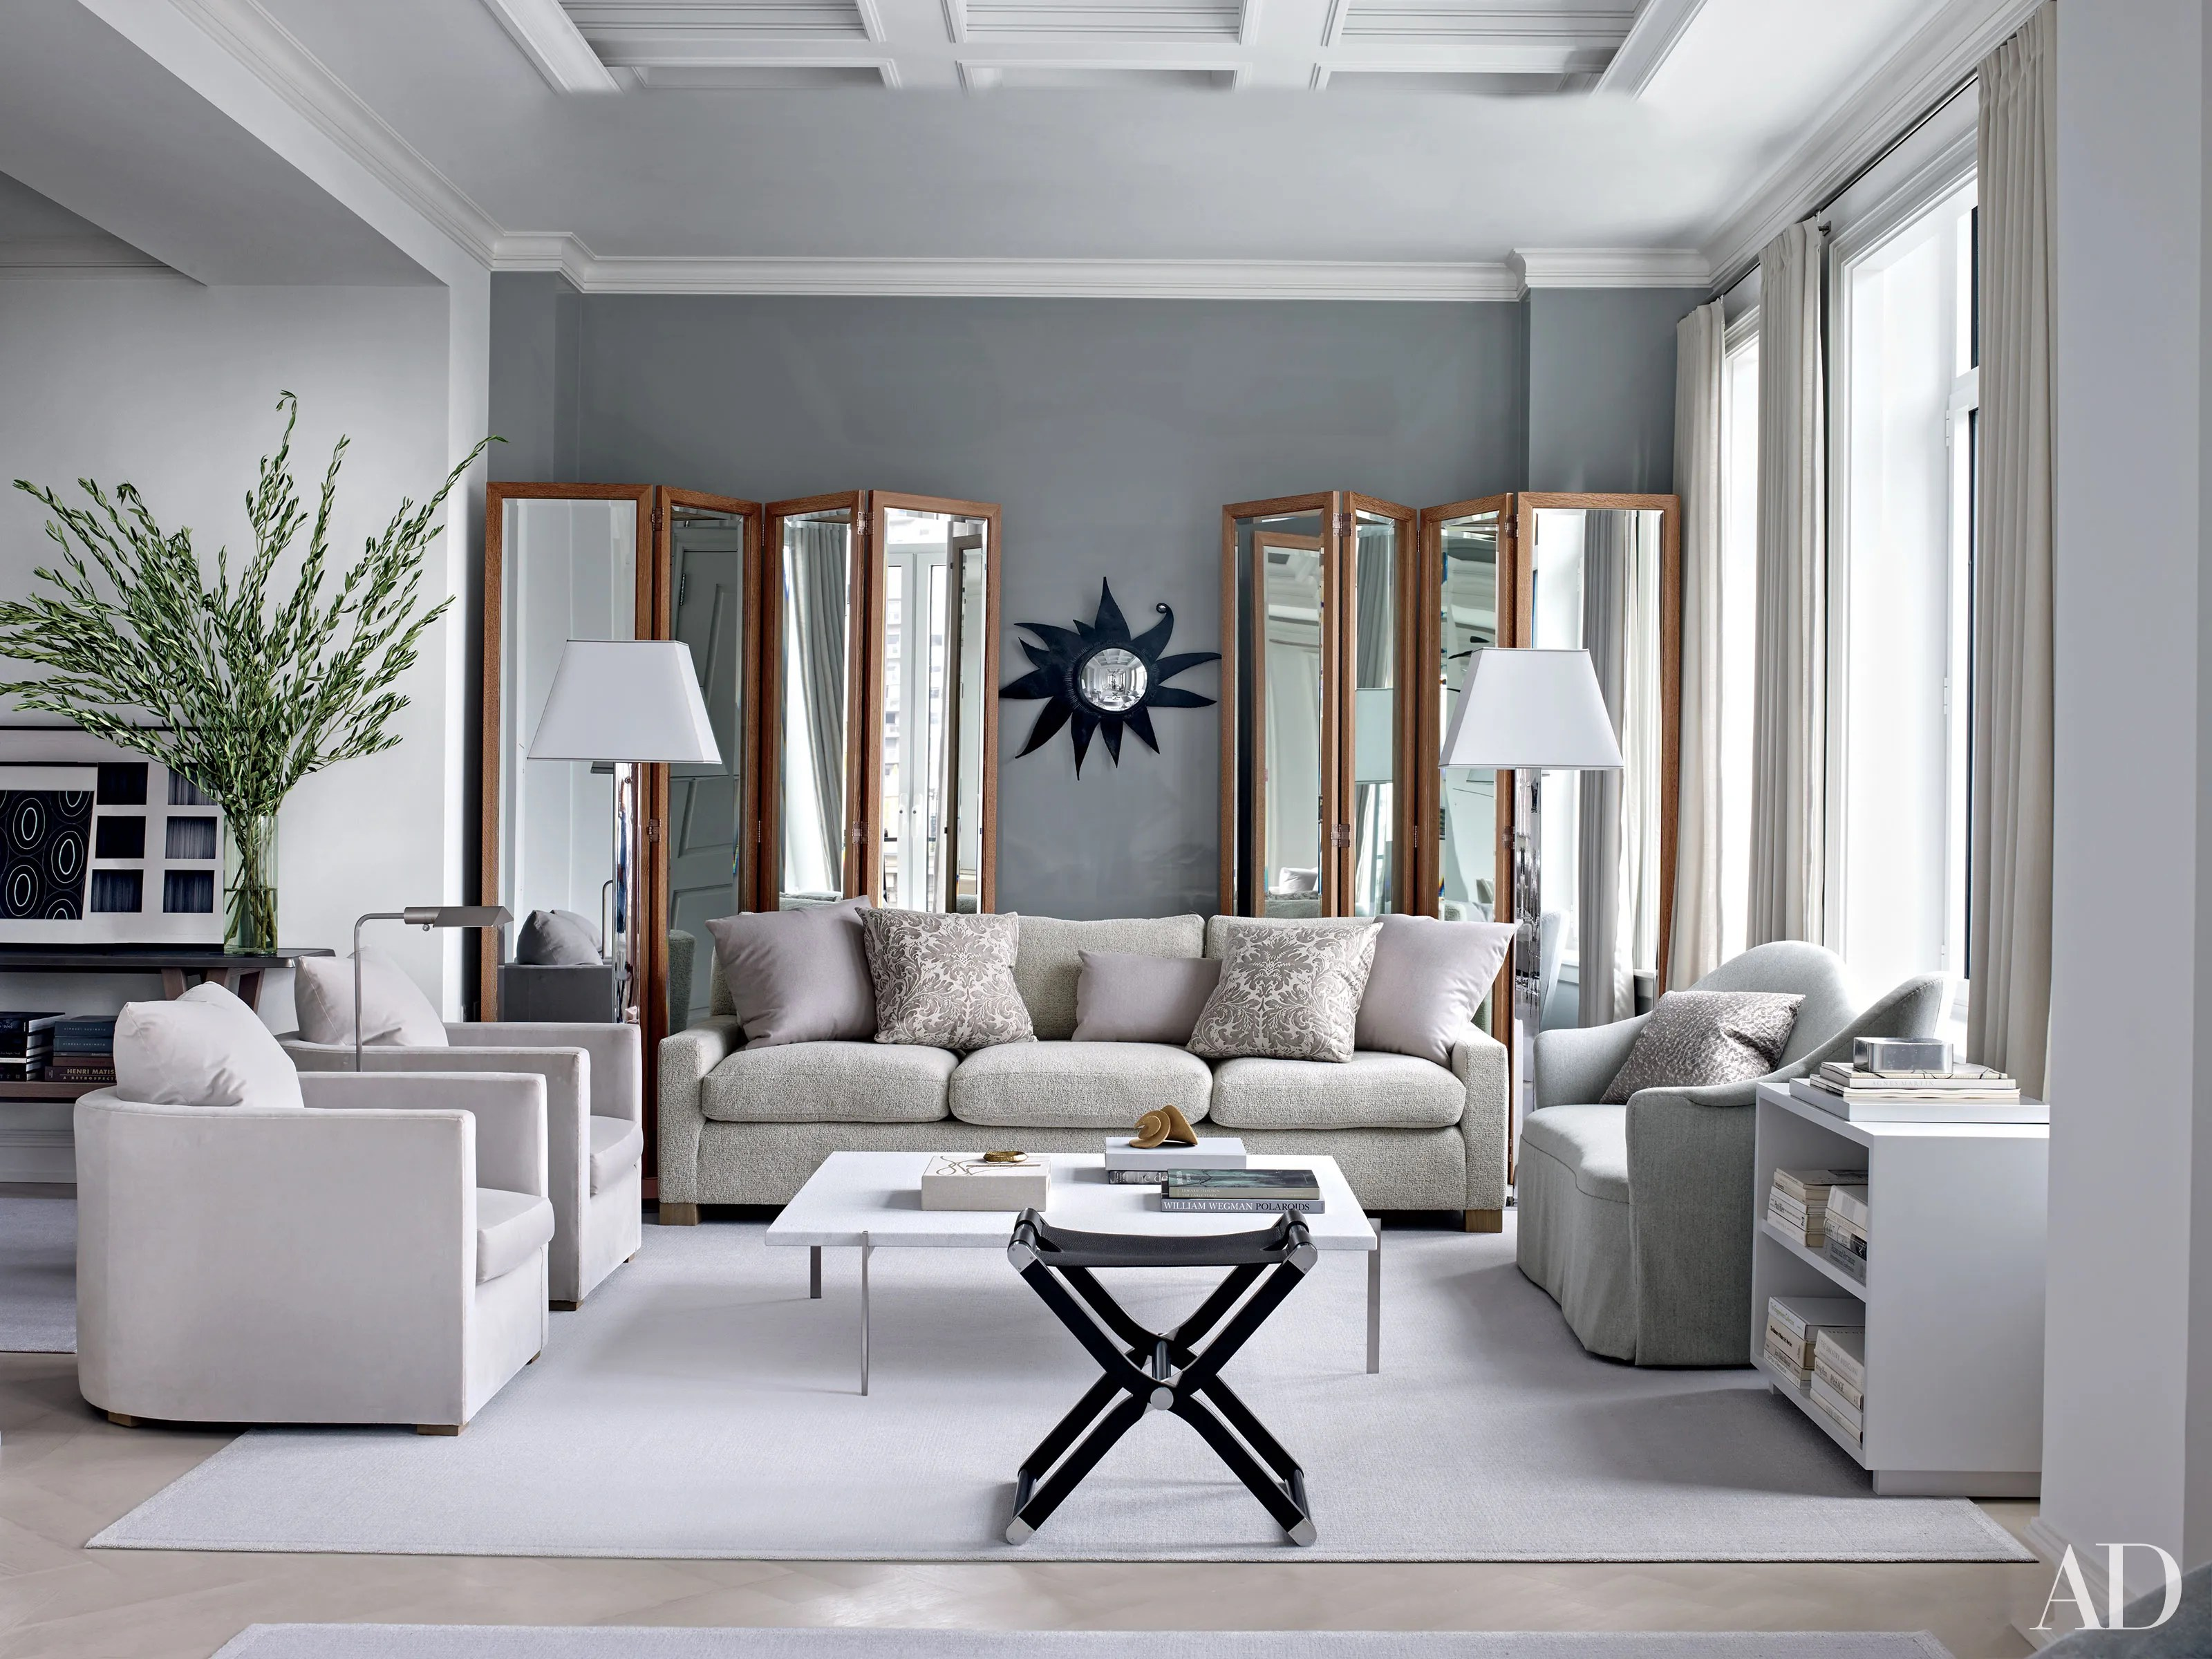 Metropolitan Benjamin Moore Benjamin Moore Reveals Its 2019 Color Of The Year Architectural